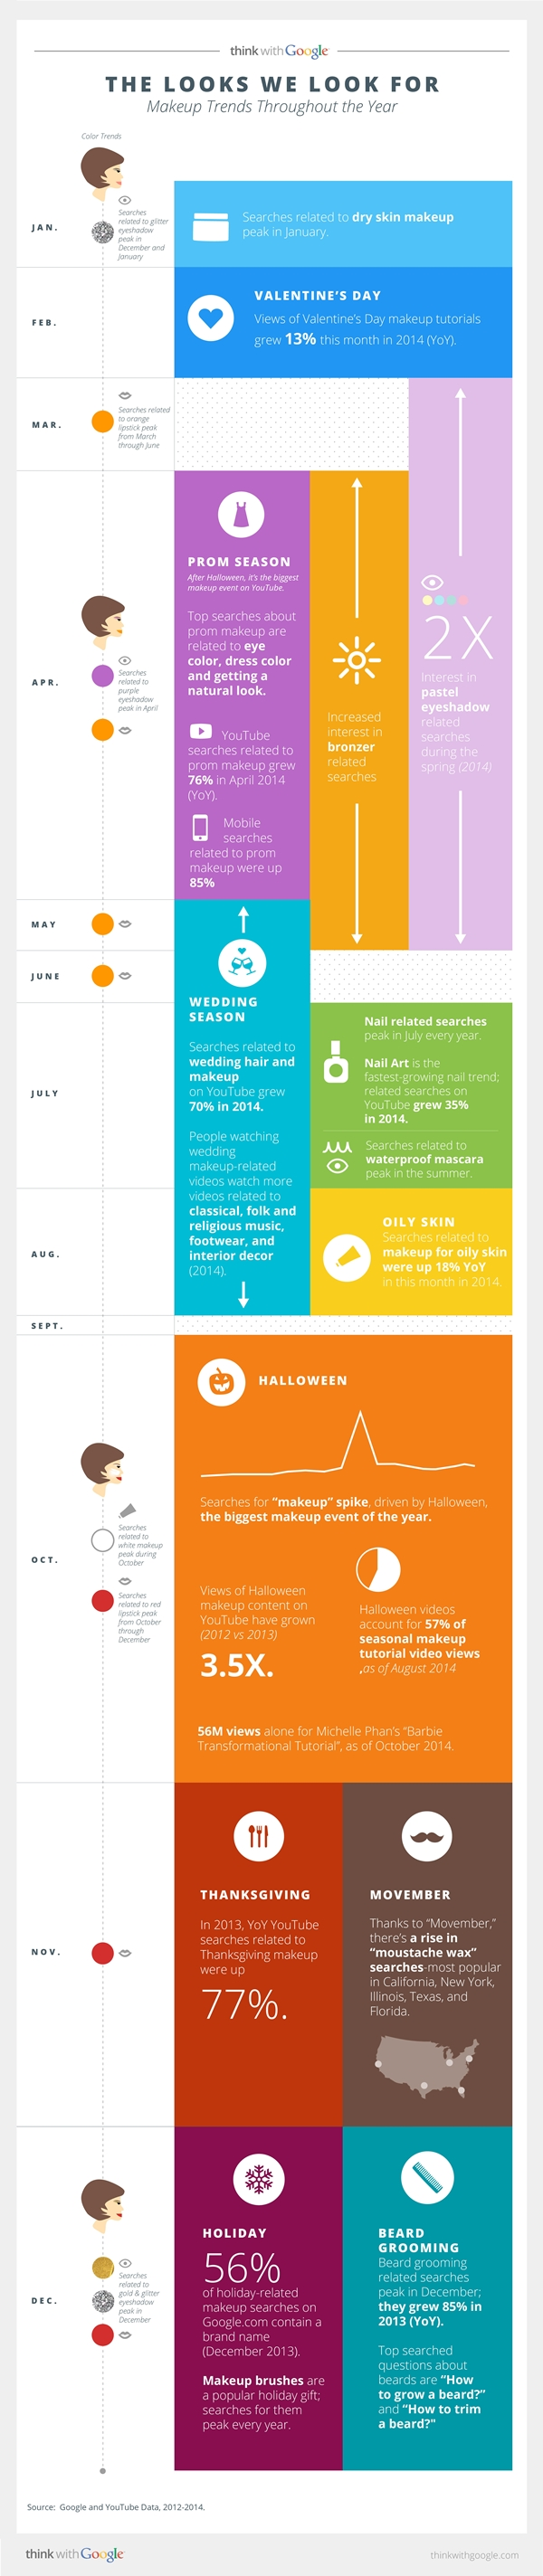 Beauty on YouTube infographic-page-0